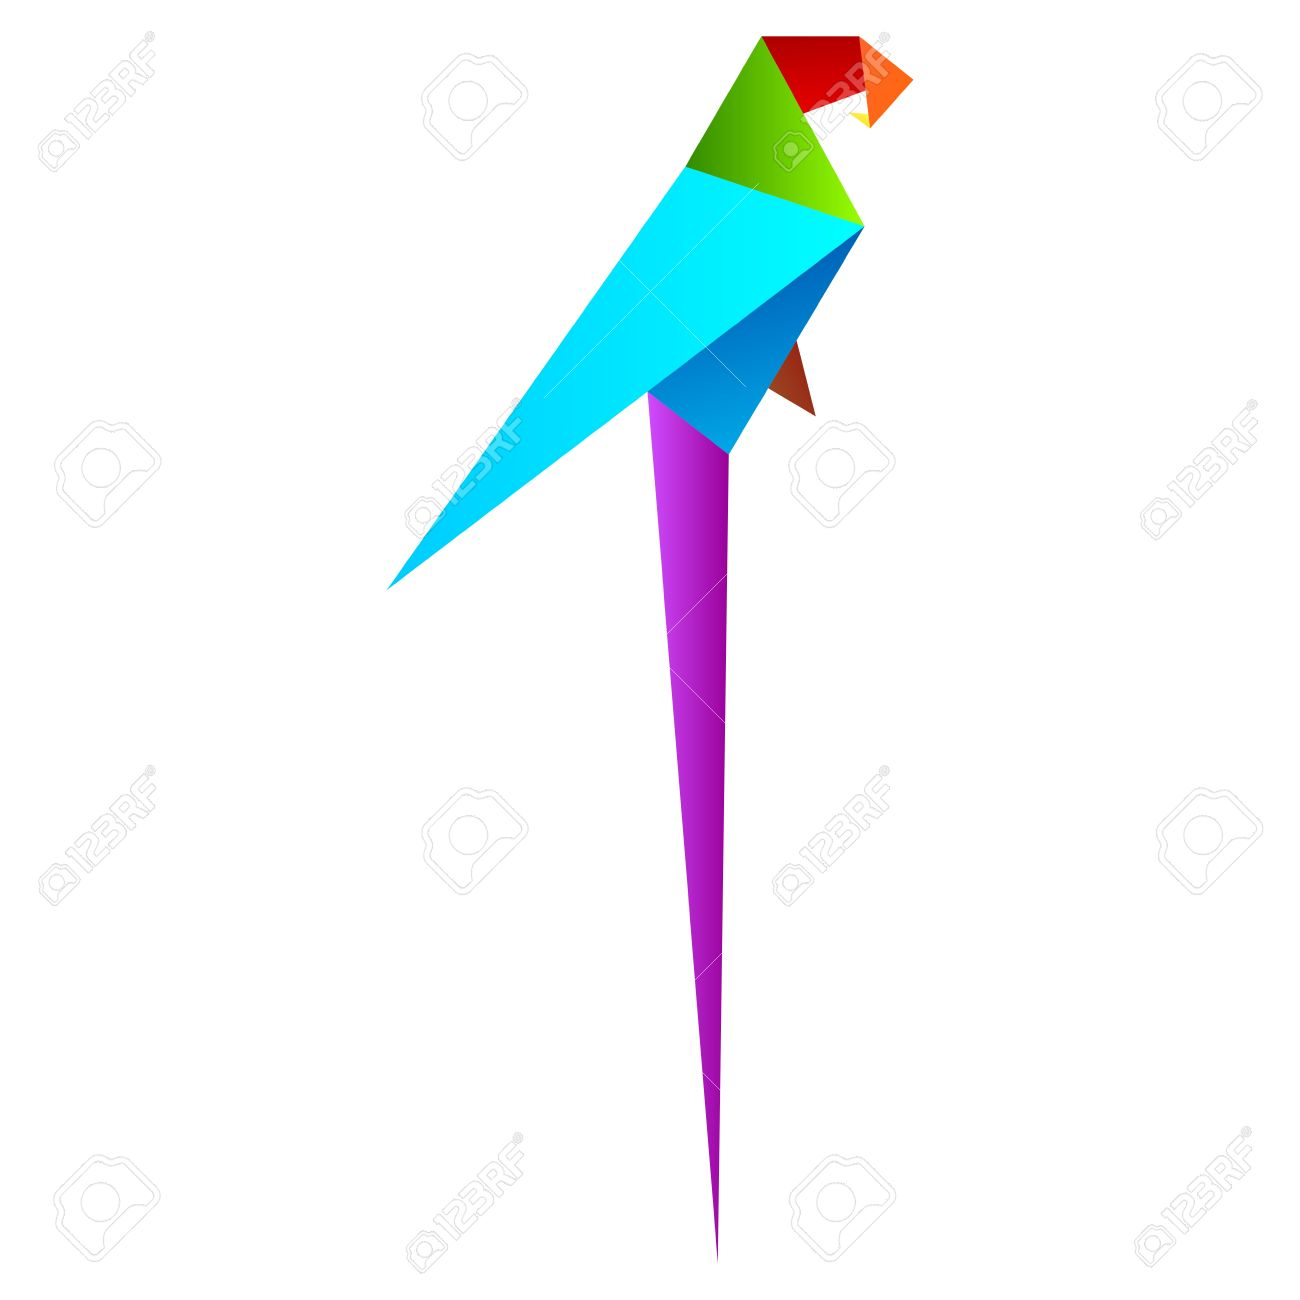 Origami Tutorial - How to fold a Parrot (mit Bildern) | Origami ... | 1300x1300